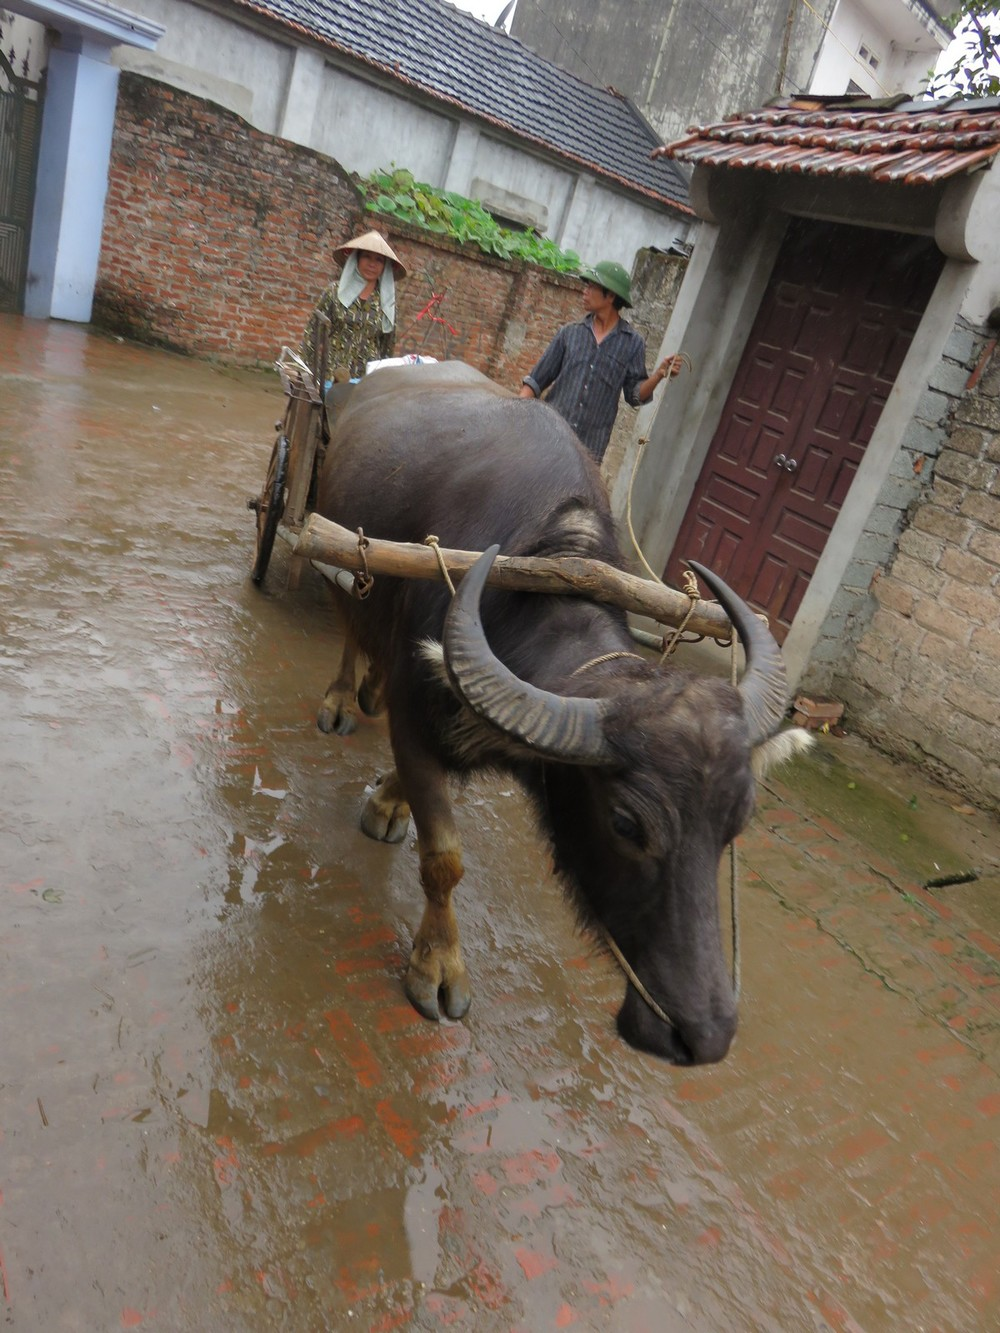 Sometimes you see motorbikes, other times you see water buffalo...